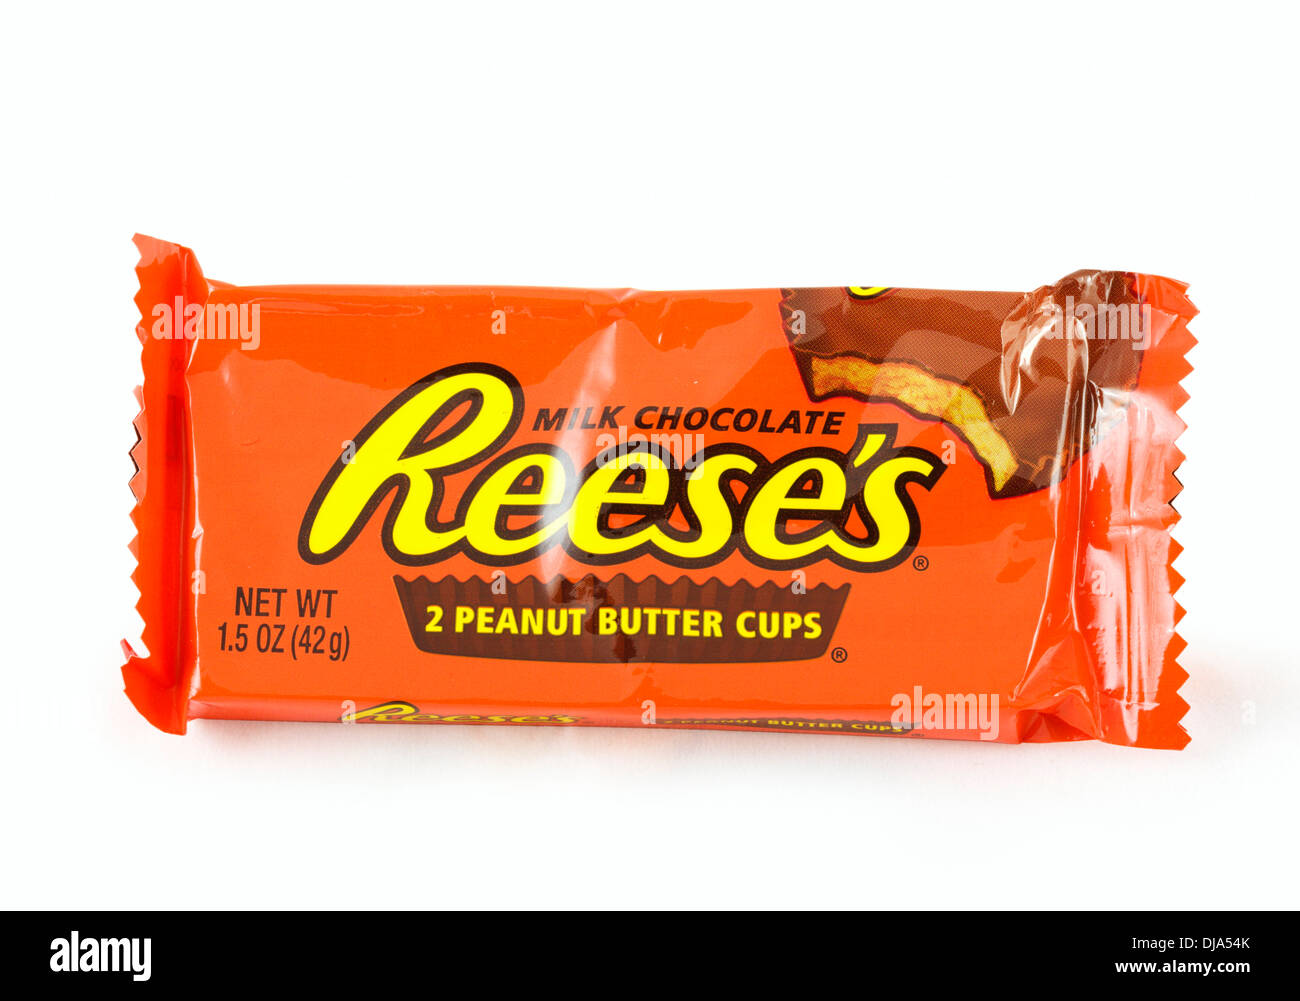 Packet of Reese's Peanut Butter Cups, USA - Stock Image